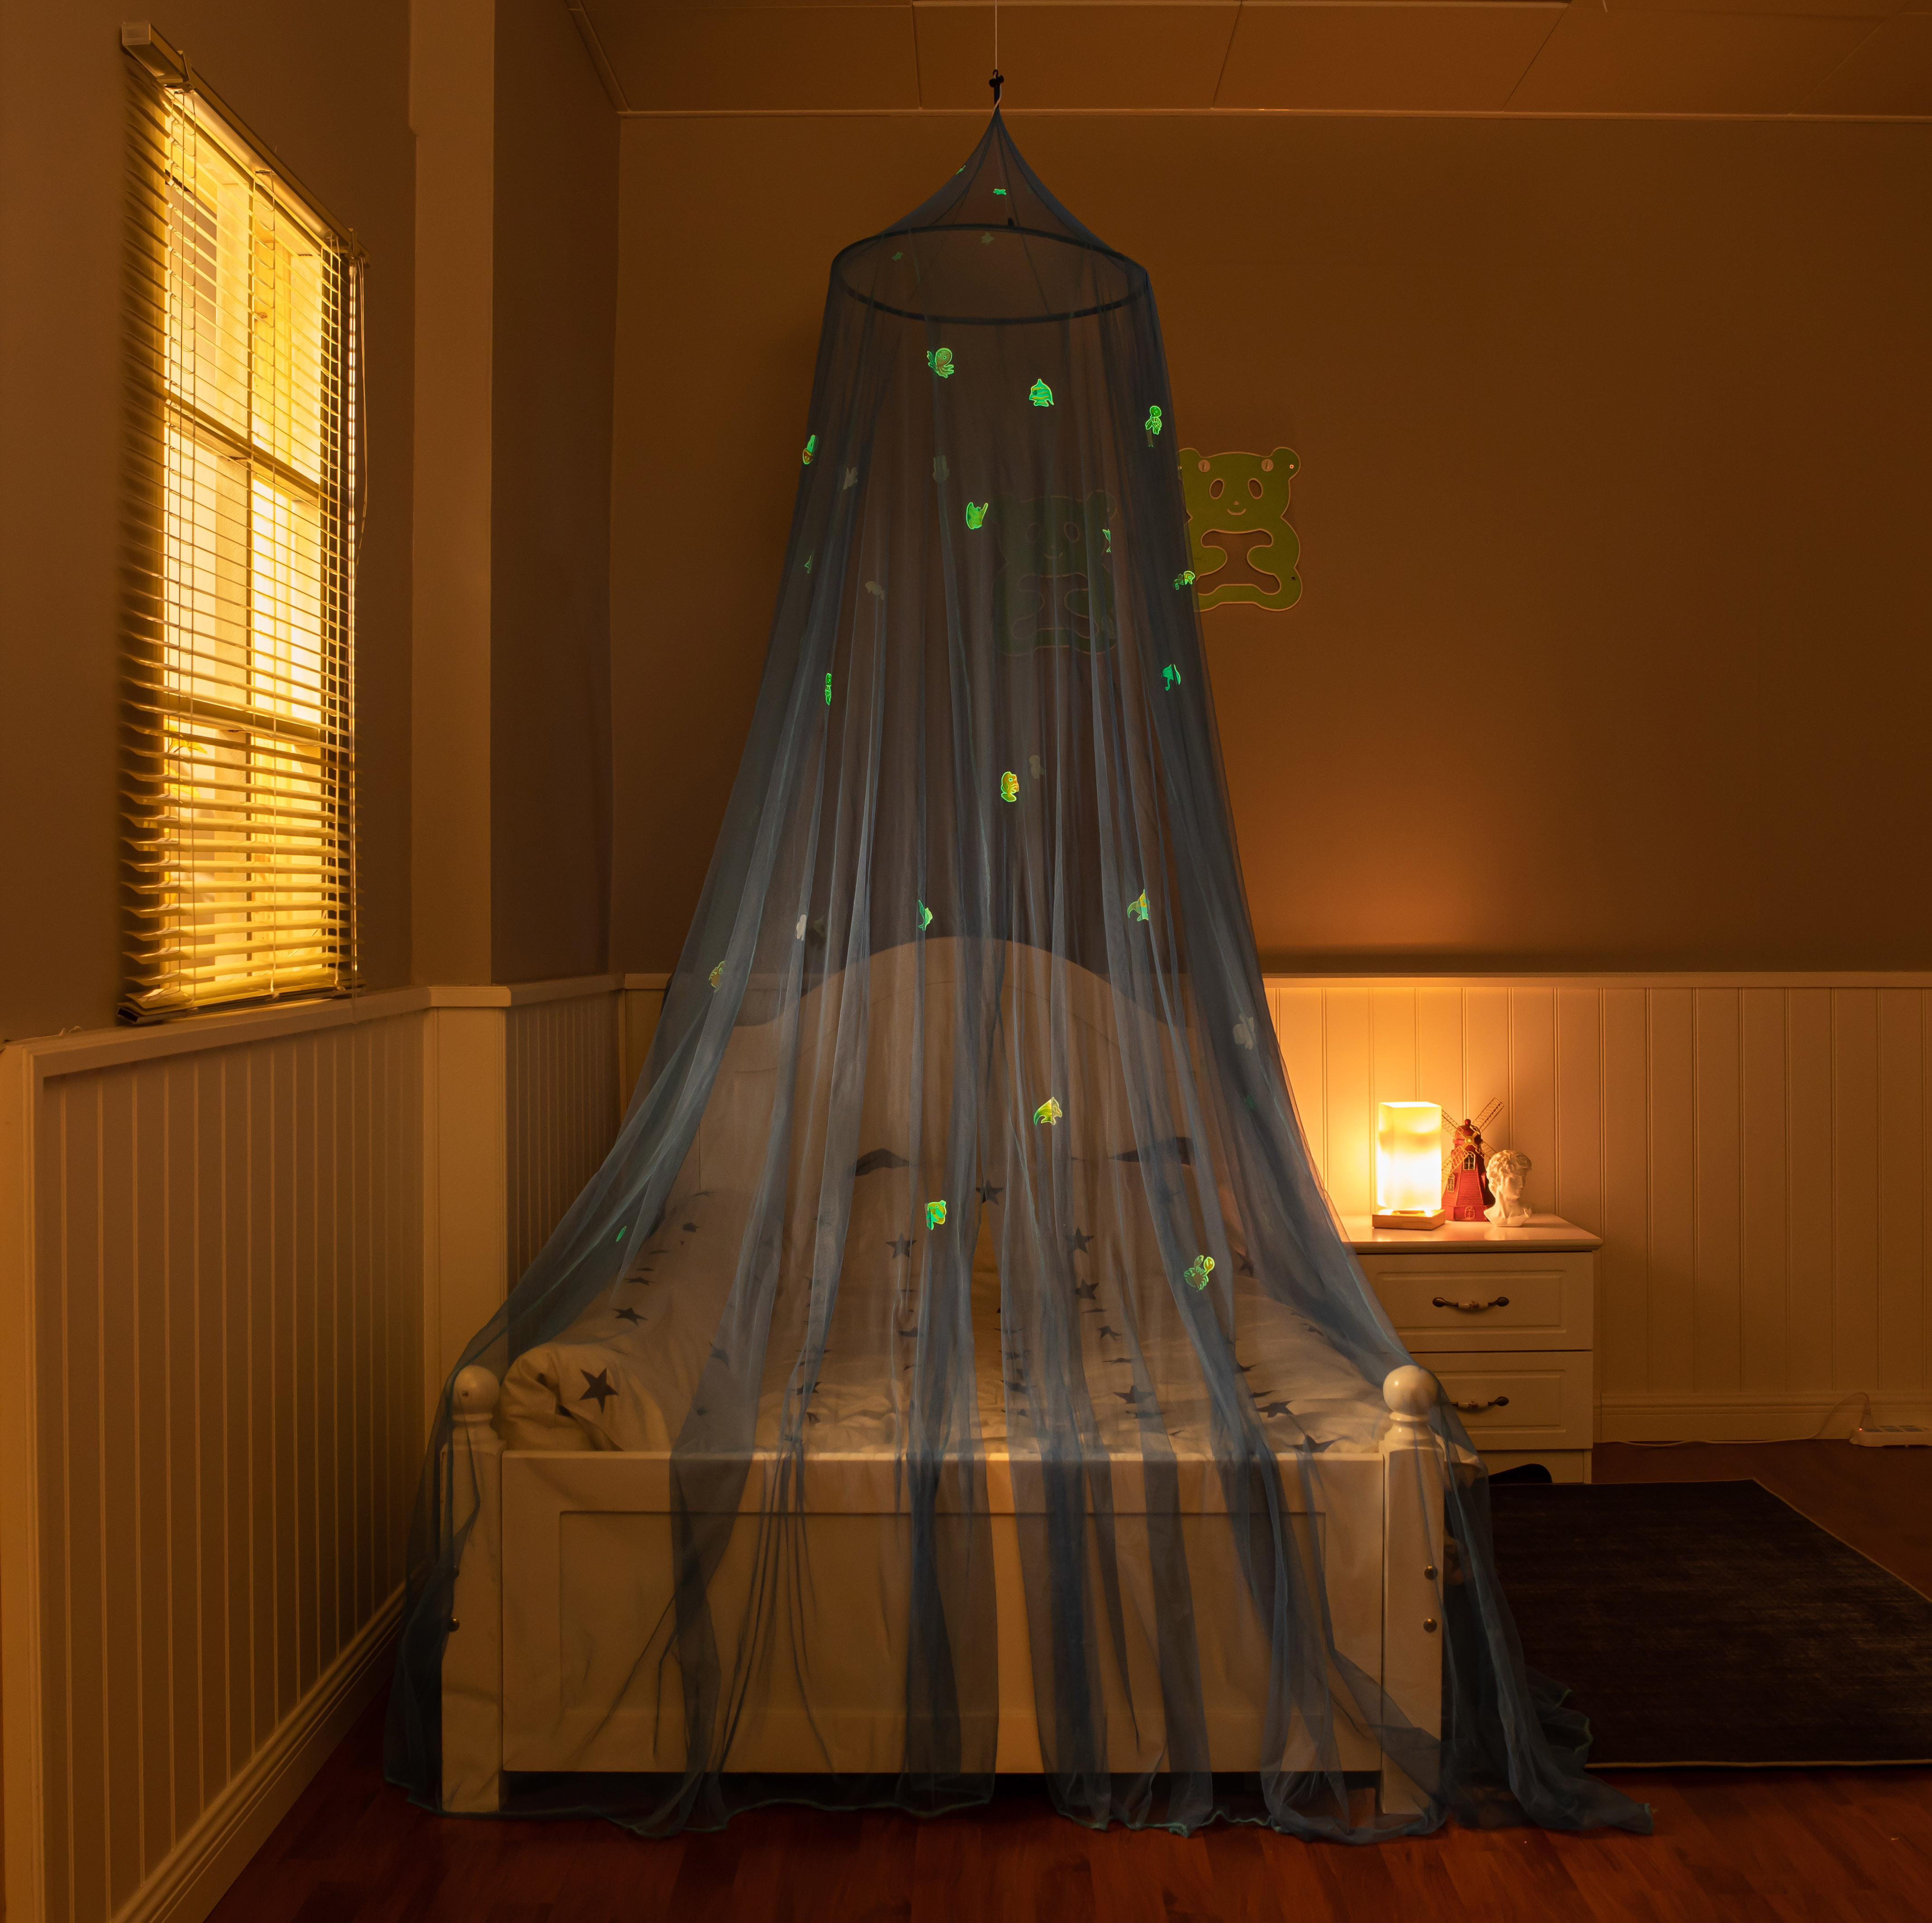 2020 New Product Glowing In The Dark Blue Ocean Hanging Folding Mosquito Net